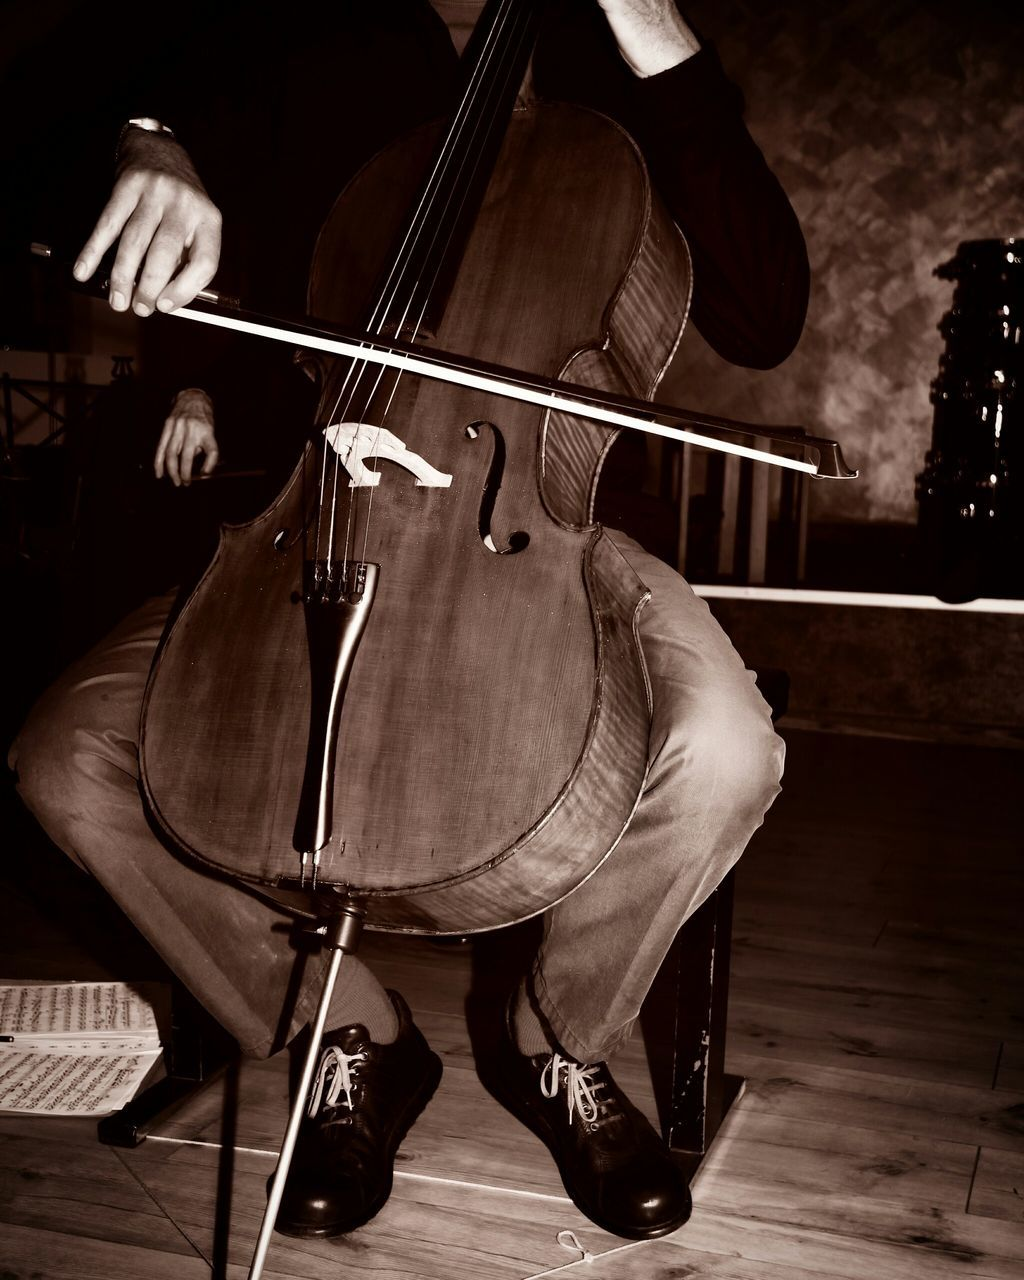 music, musician, musical instrument, playing, arts culture and entertainment, performance, real people, musical instrument string, cello, one person, men, event, classical music, indoors, skill, day, people